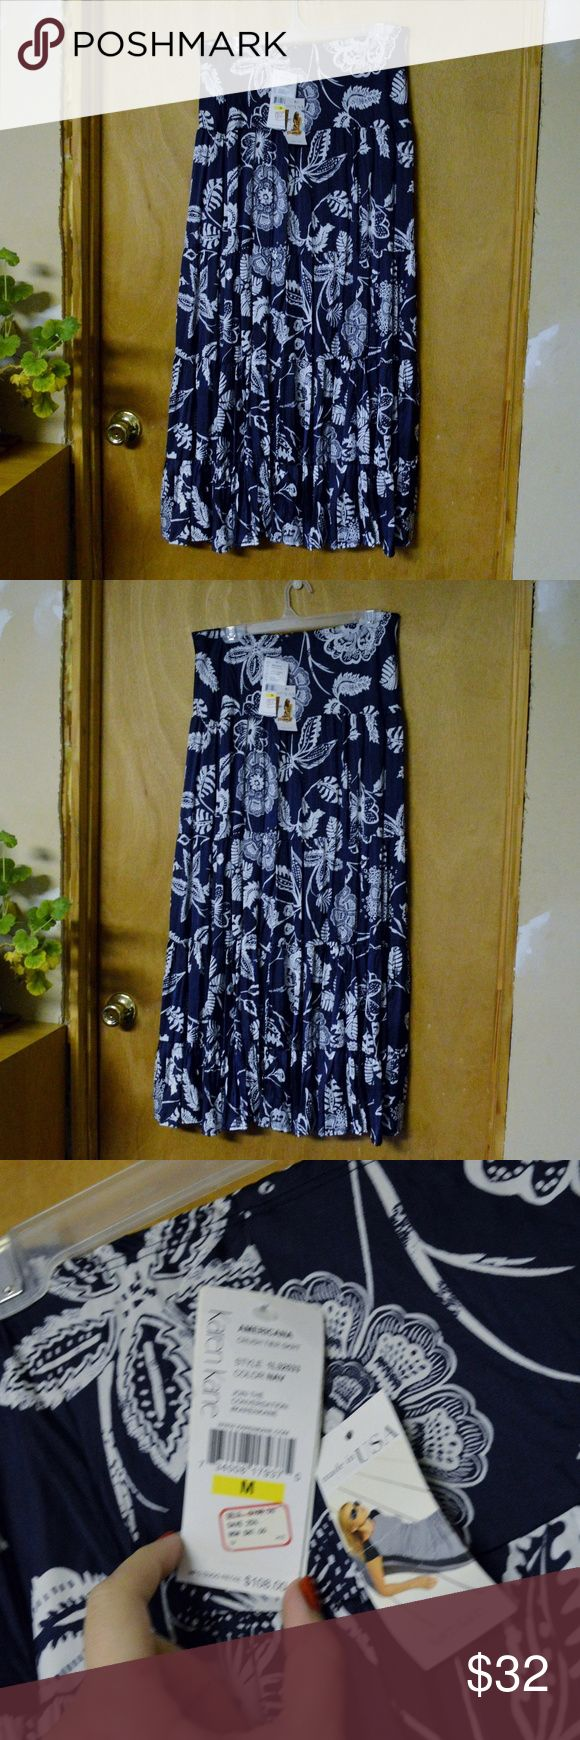 """NWT Karen Kane Americana Crush Tier Skirt Size M Up for sale is one skirt, as pictured, by Karen Kane. It is NWT and in excellent condition. It is navy and white, and the style is called Americana, Crush Tier Skirt. It features a top skirt and bottom, one polyester and the other nylon. The top/tiered portion is long (I'm 5'10"""", and it goes to my ankles), and the lining/slip layer is much short (about to my knees). This gives it an airy, flowy feel.  the tags are wrinkled from storage…"""